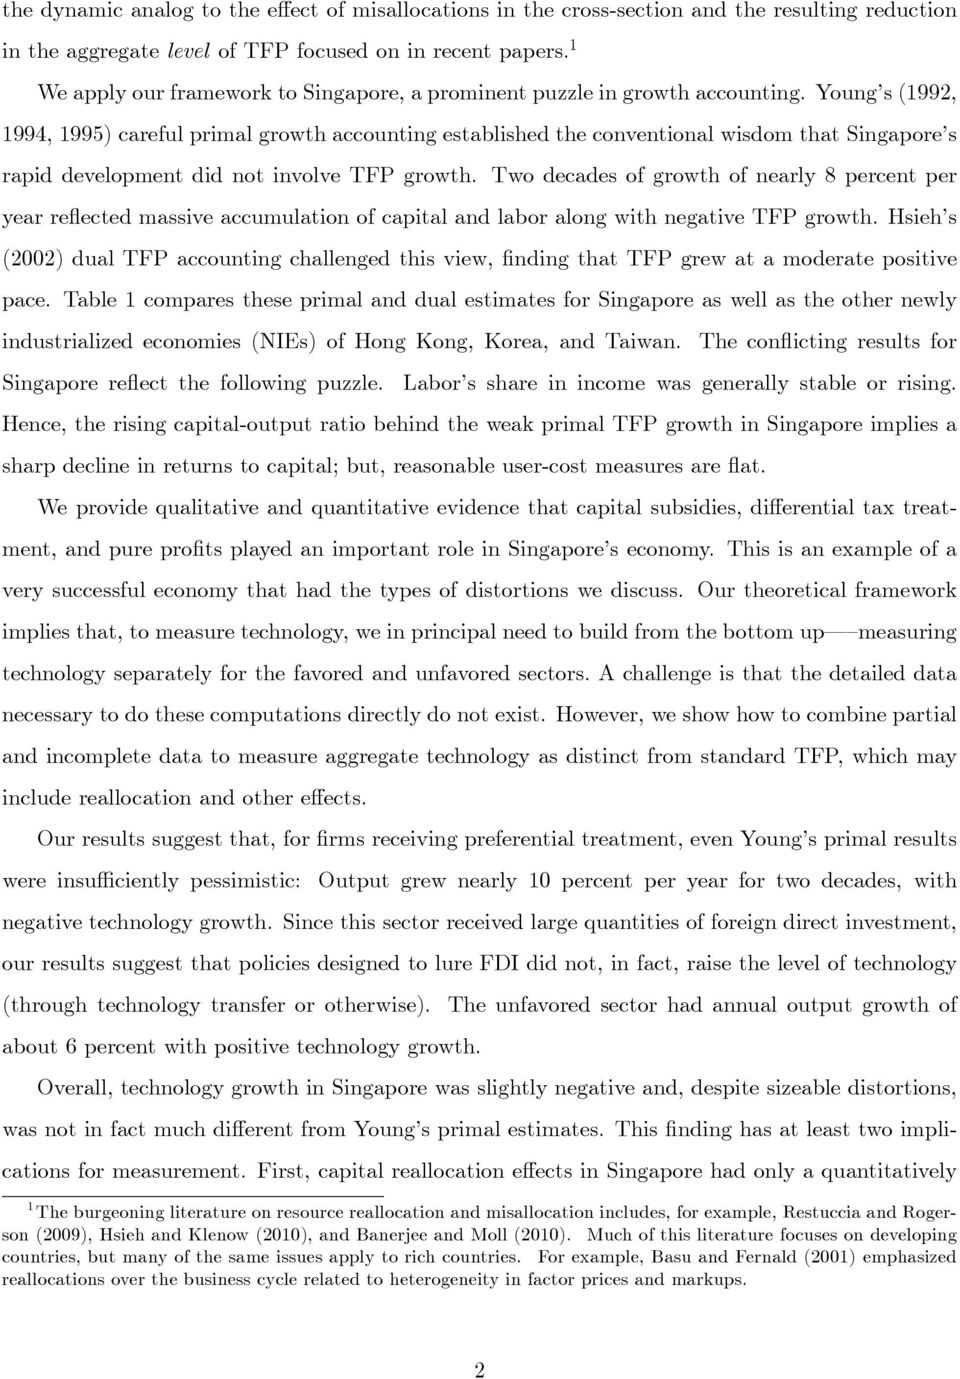 Young s (1992, 1994, 1995) careful primal growth accounting established the conventional wisdom that Singapore s rapid development did not involve TFP growth.